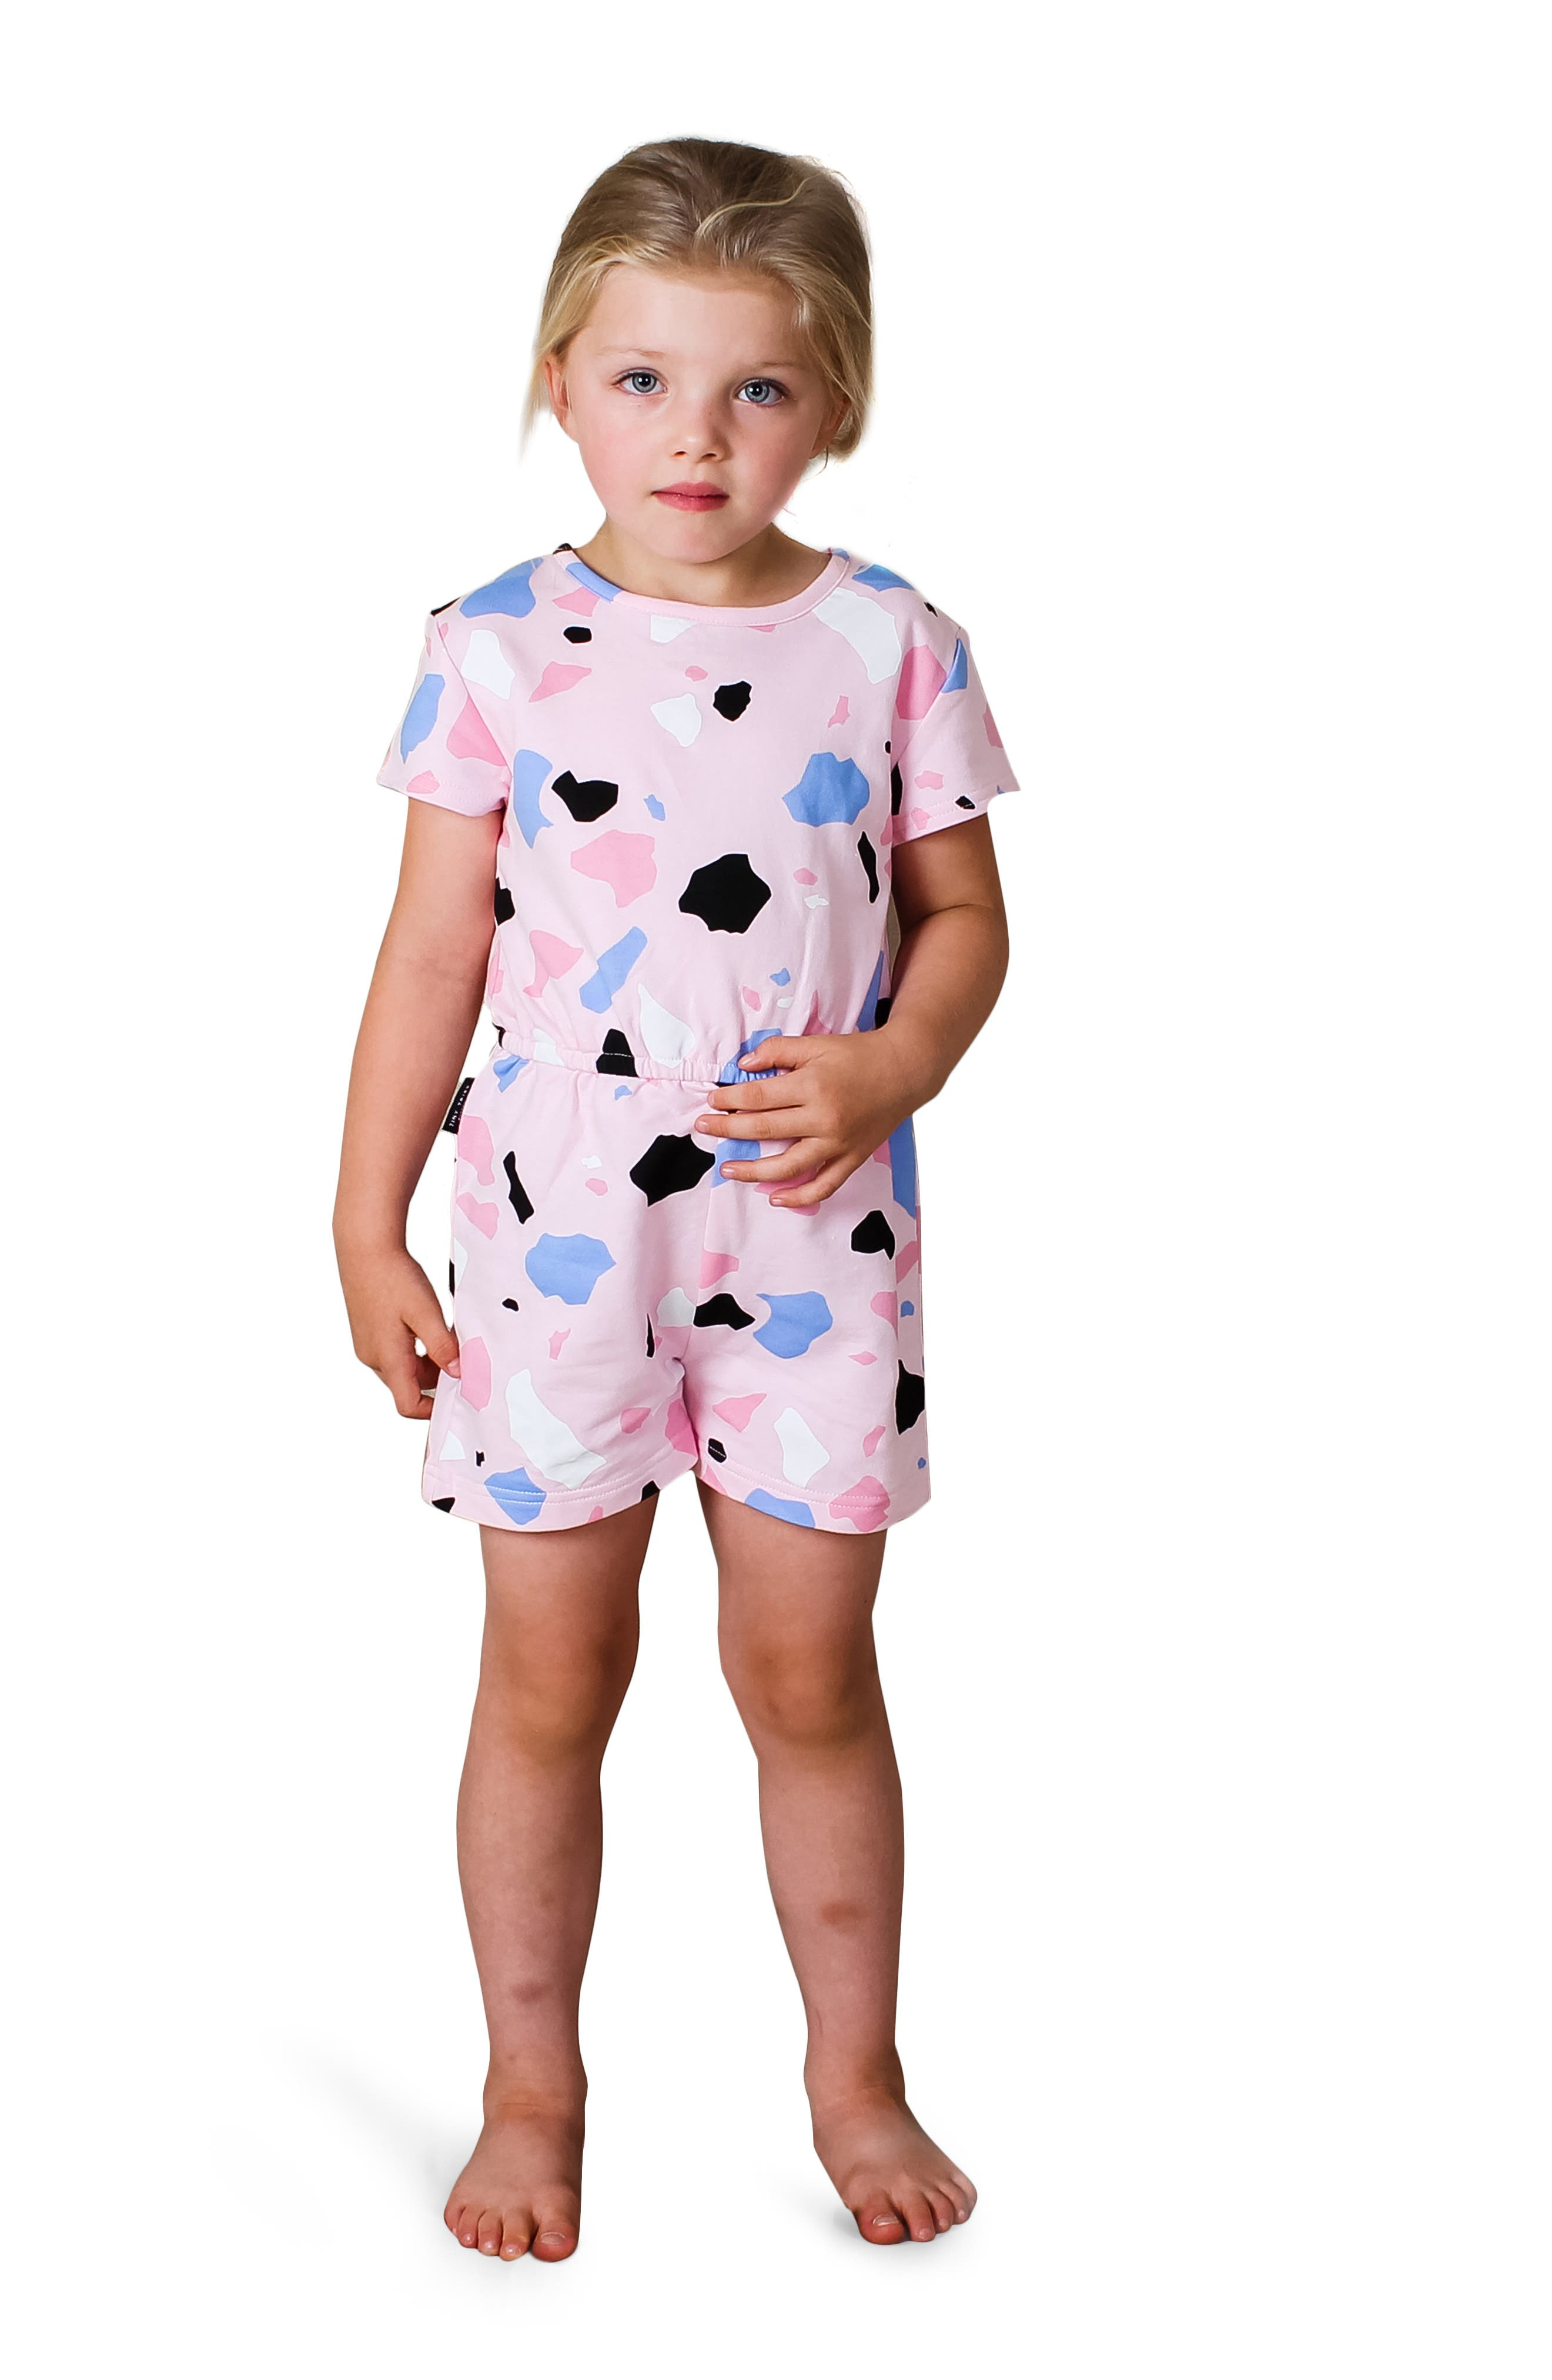 Janly Clearance Sale Girls Romper for 2-7 Years Old for 2-3 Years Old Little Kids Yellow Toddler Baby Girls Ruffled Sleeves Leopard Princess Playsuit Jumpsuits Clothes